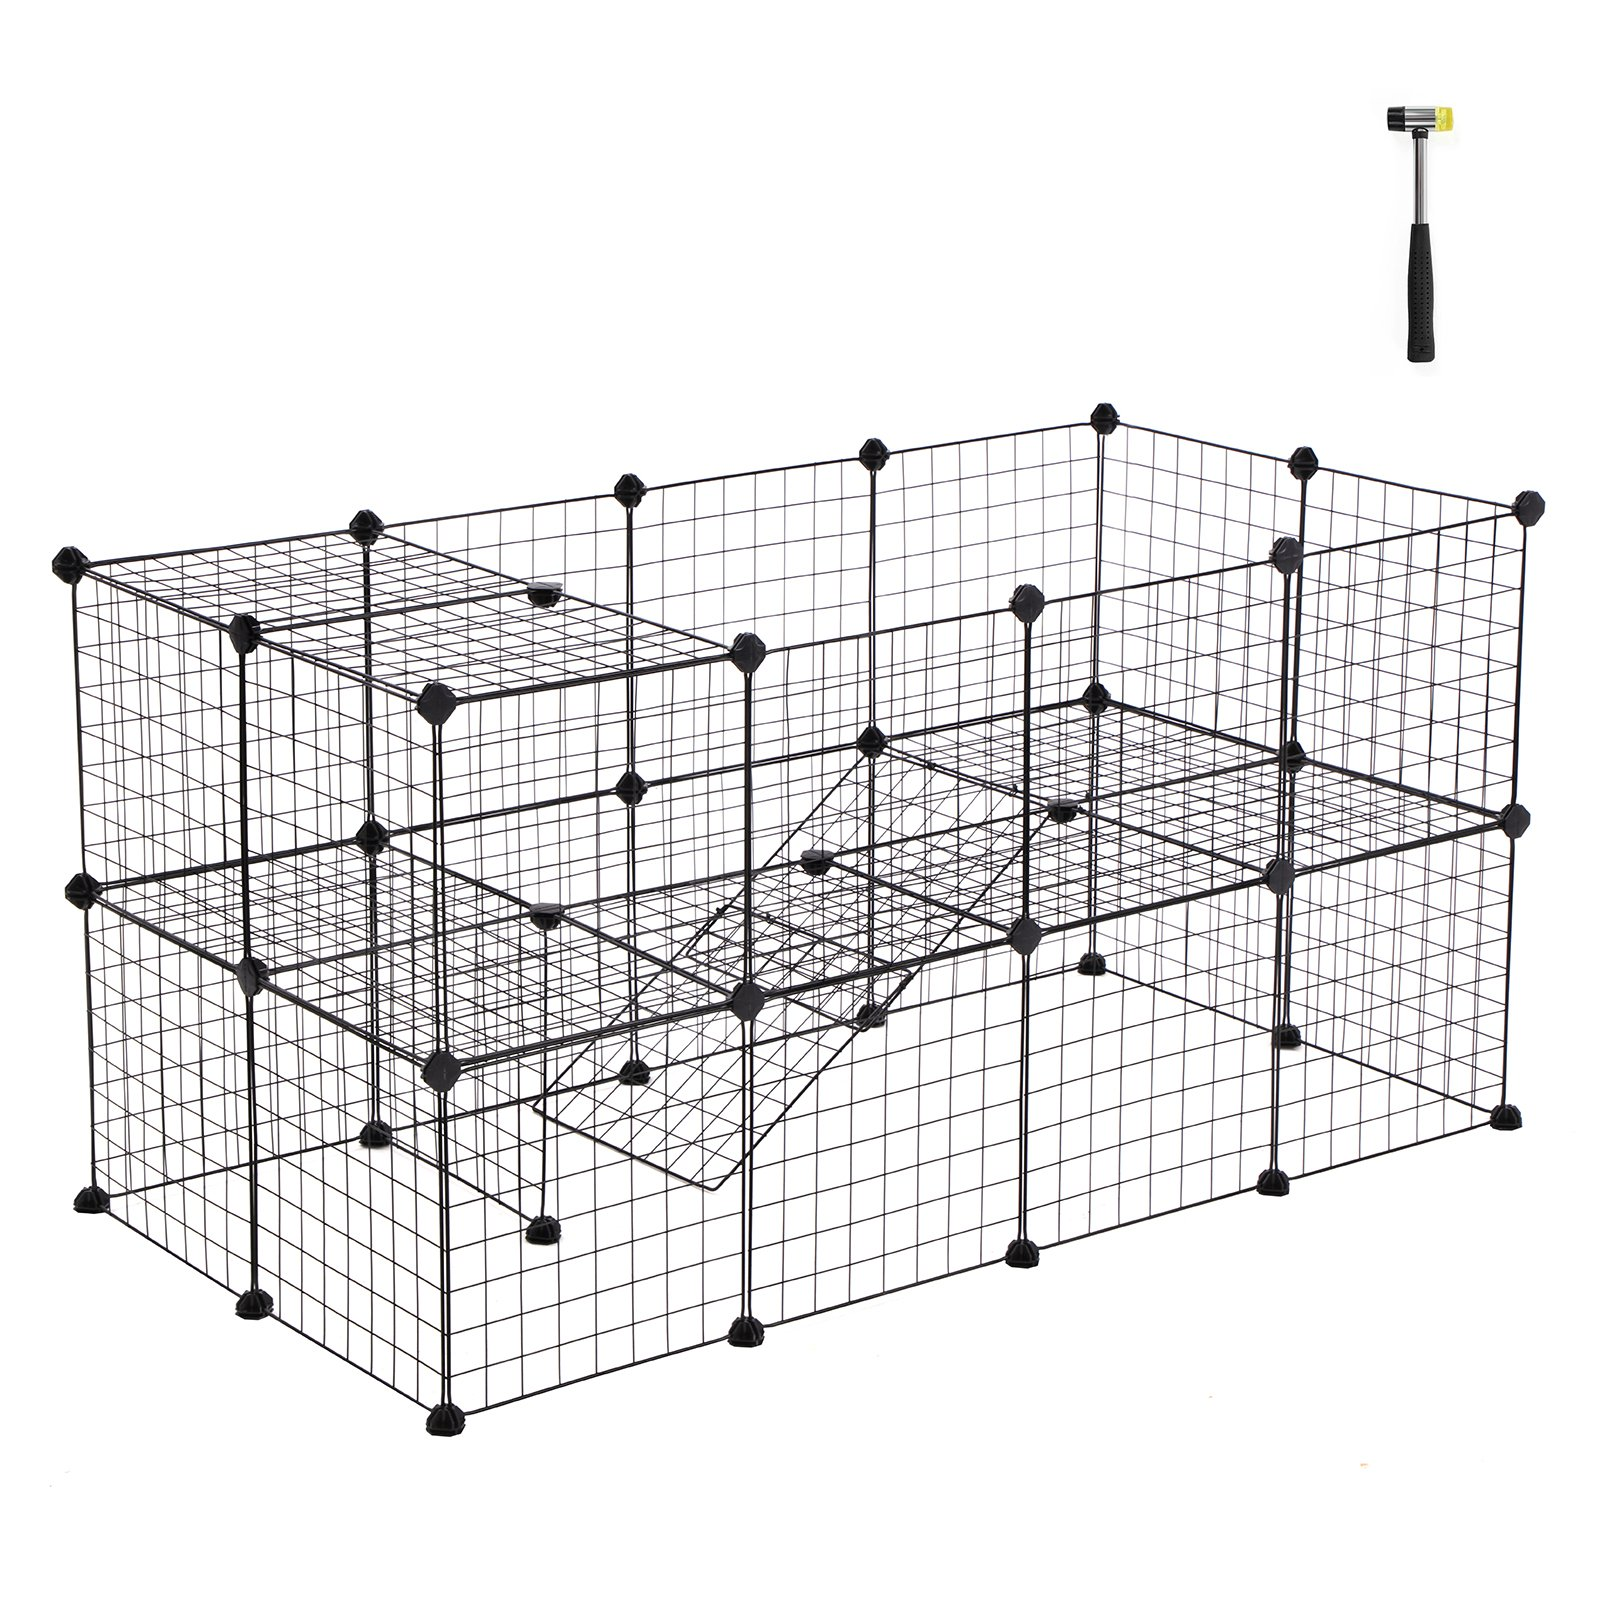 SONGMICS Small Pet Playpen, Metal Wire Apartment-Style Two-Storey Animal Fence and Kennel, Comfortable Pet Premium Villa for Guinea Pigs, Rabbits, Includes Rubber Mallet for Indoor Use ULPI02H